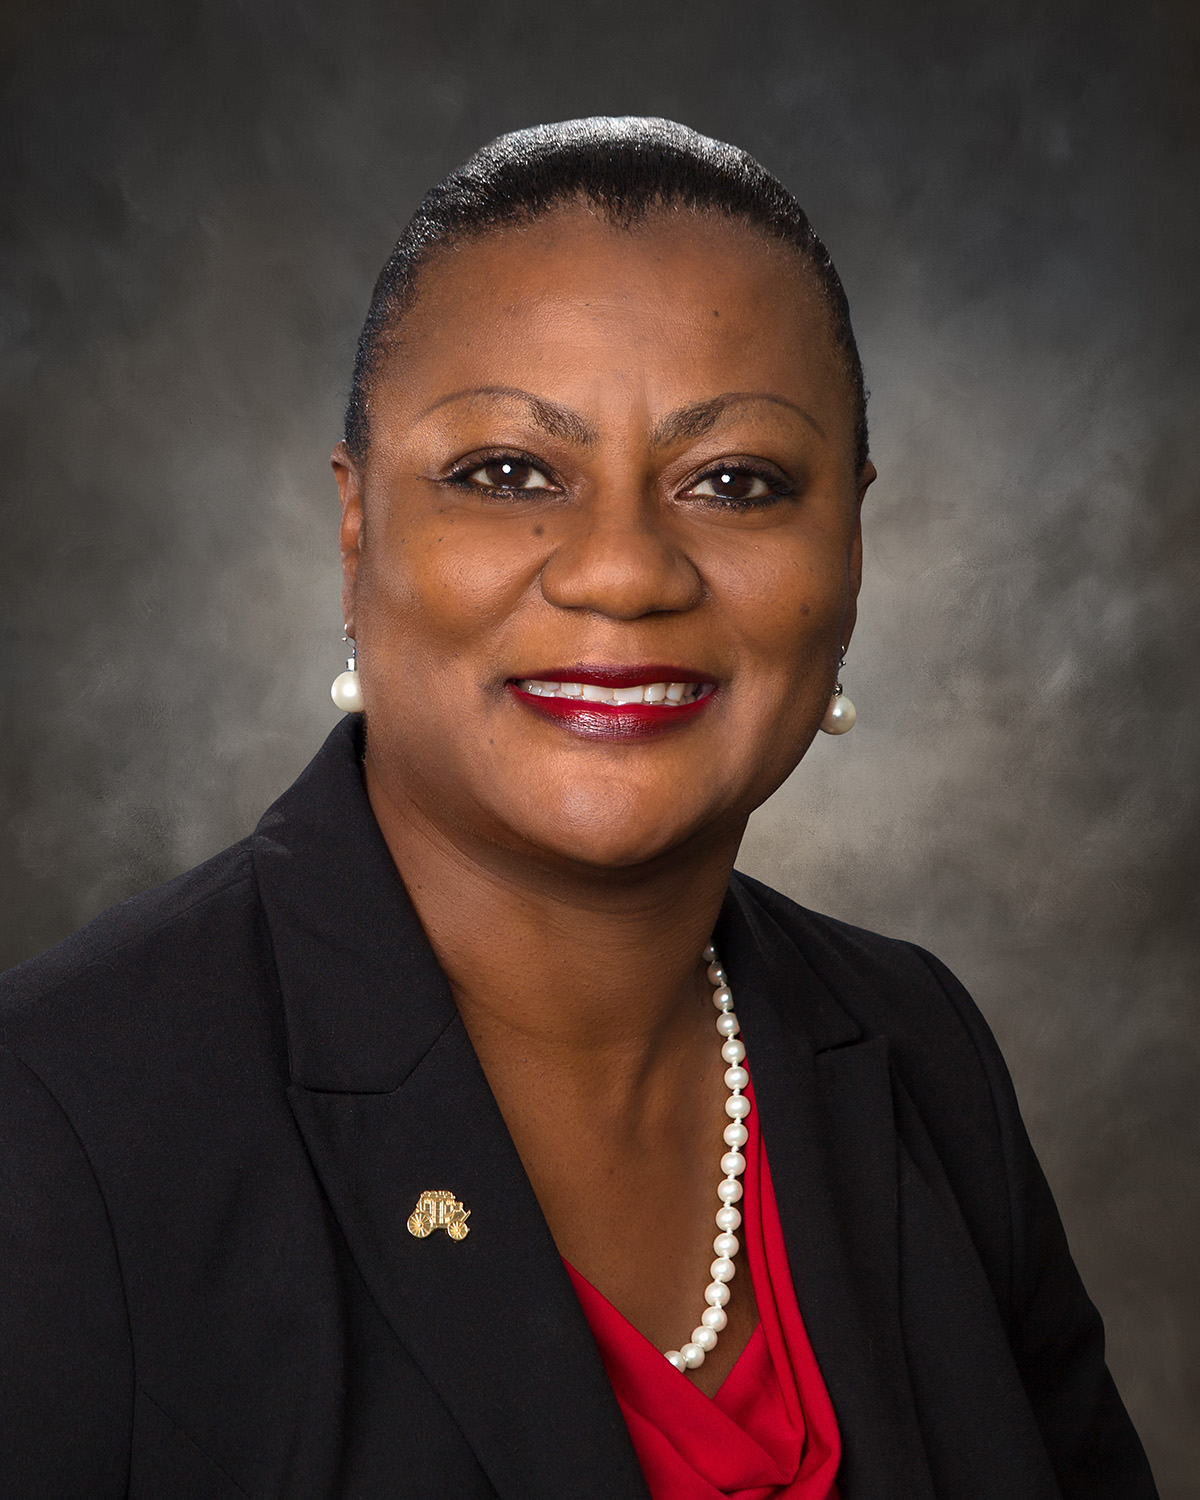 Marilyn Drayton, Wells Fargo Community Relations Senior Manager for Florida and Southeast Regions